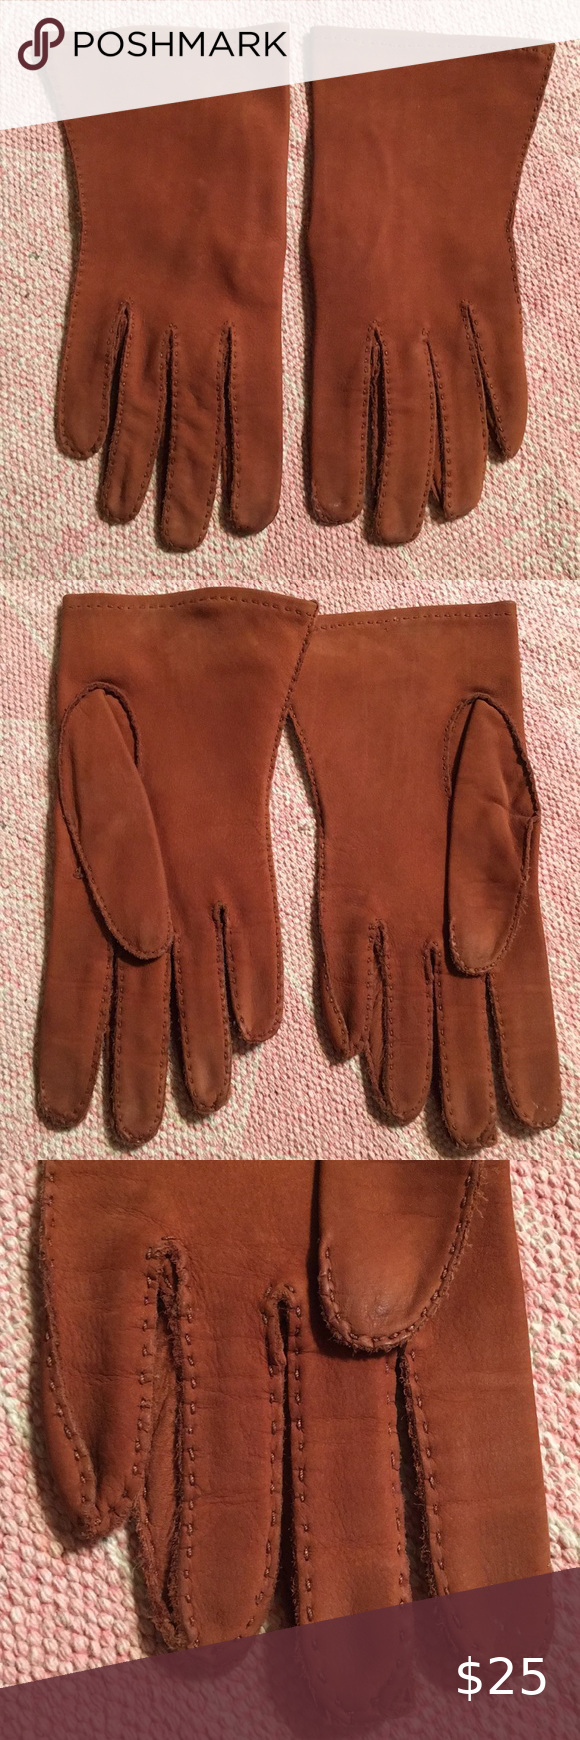 Alexandrine vintage suede leather French gloves in 2020